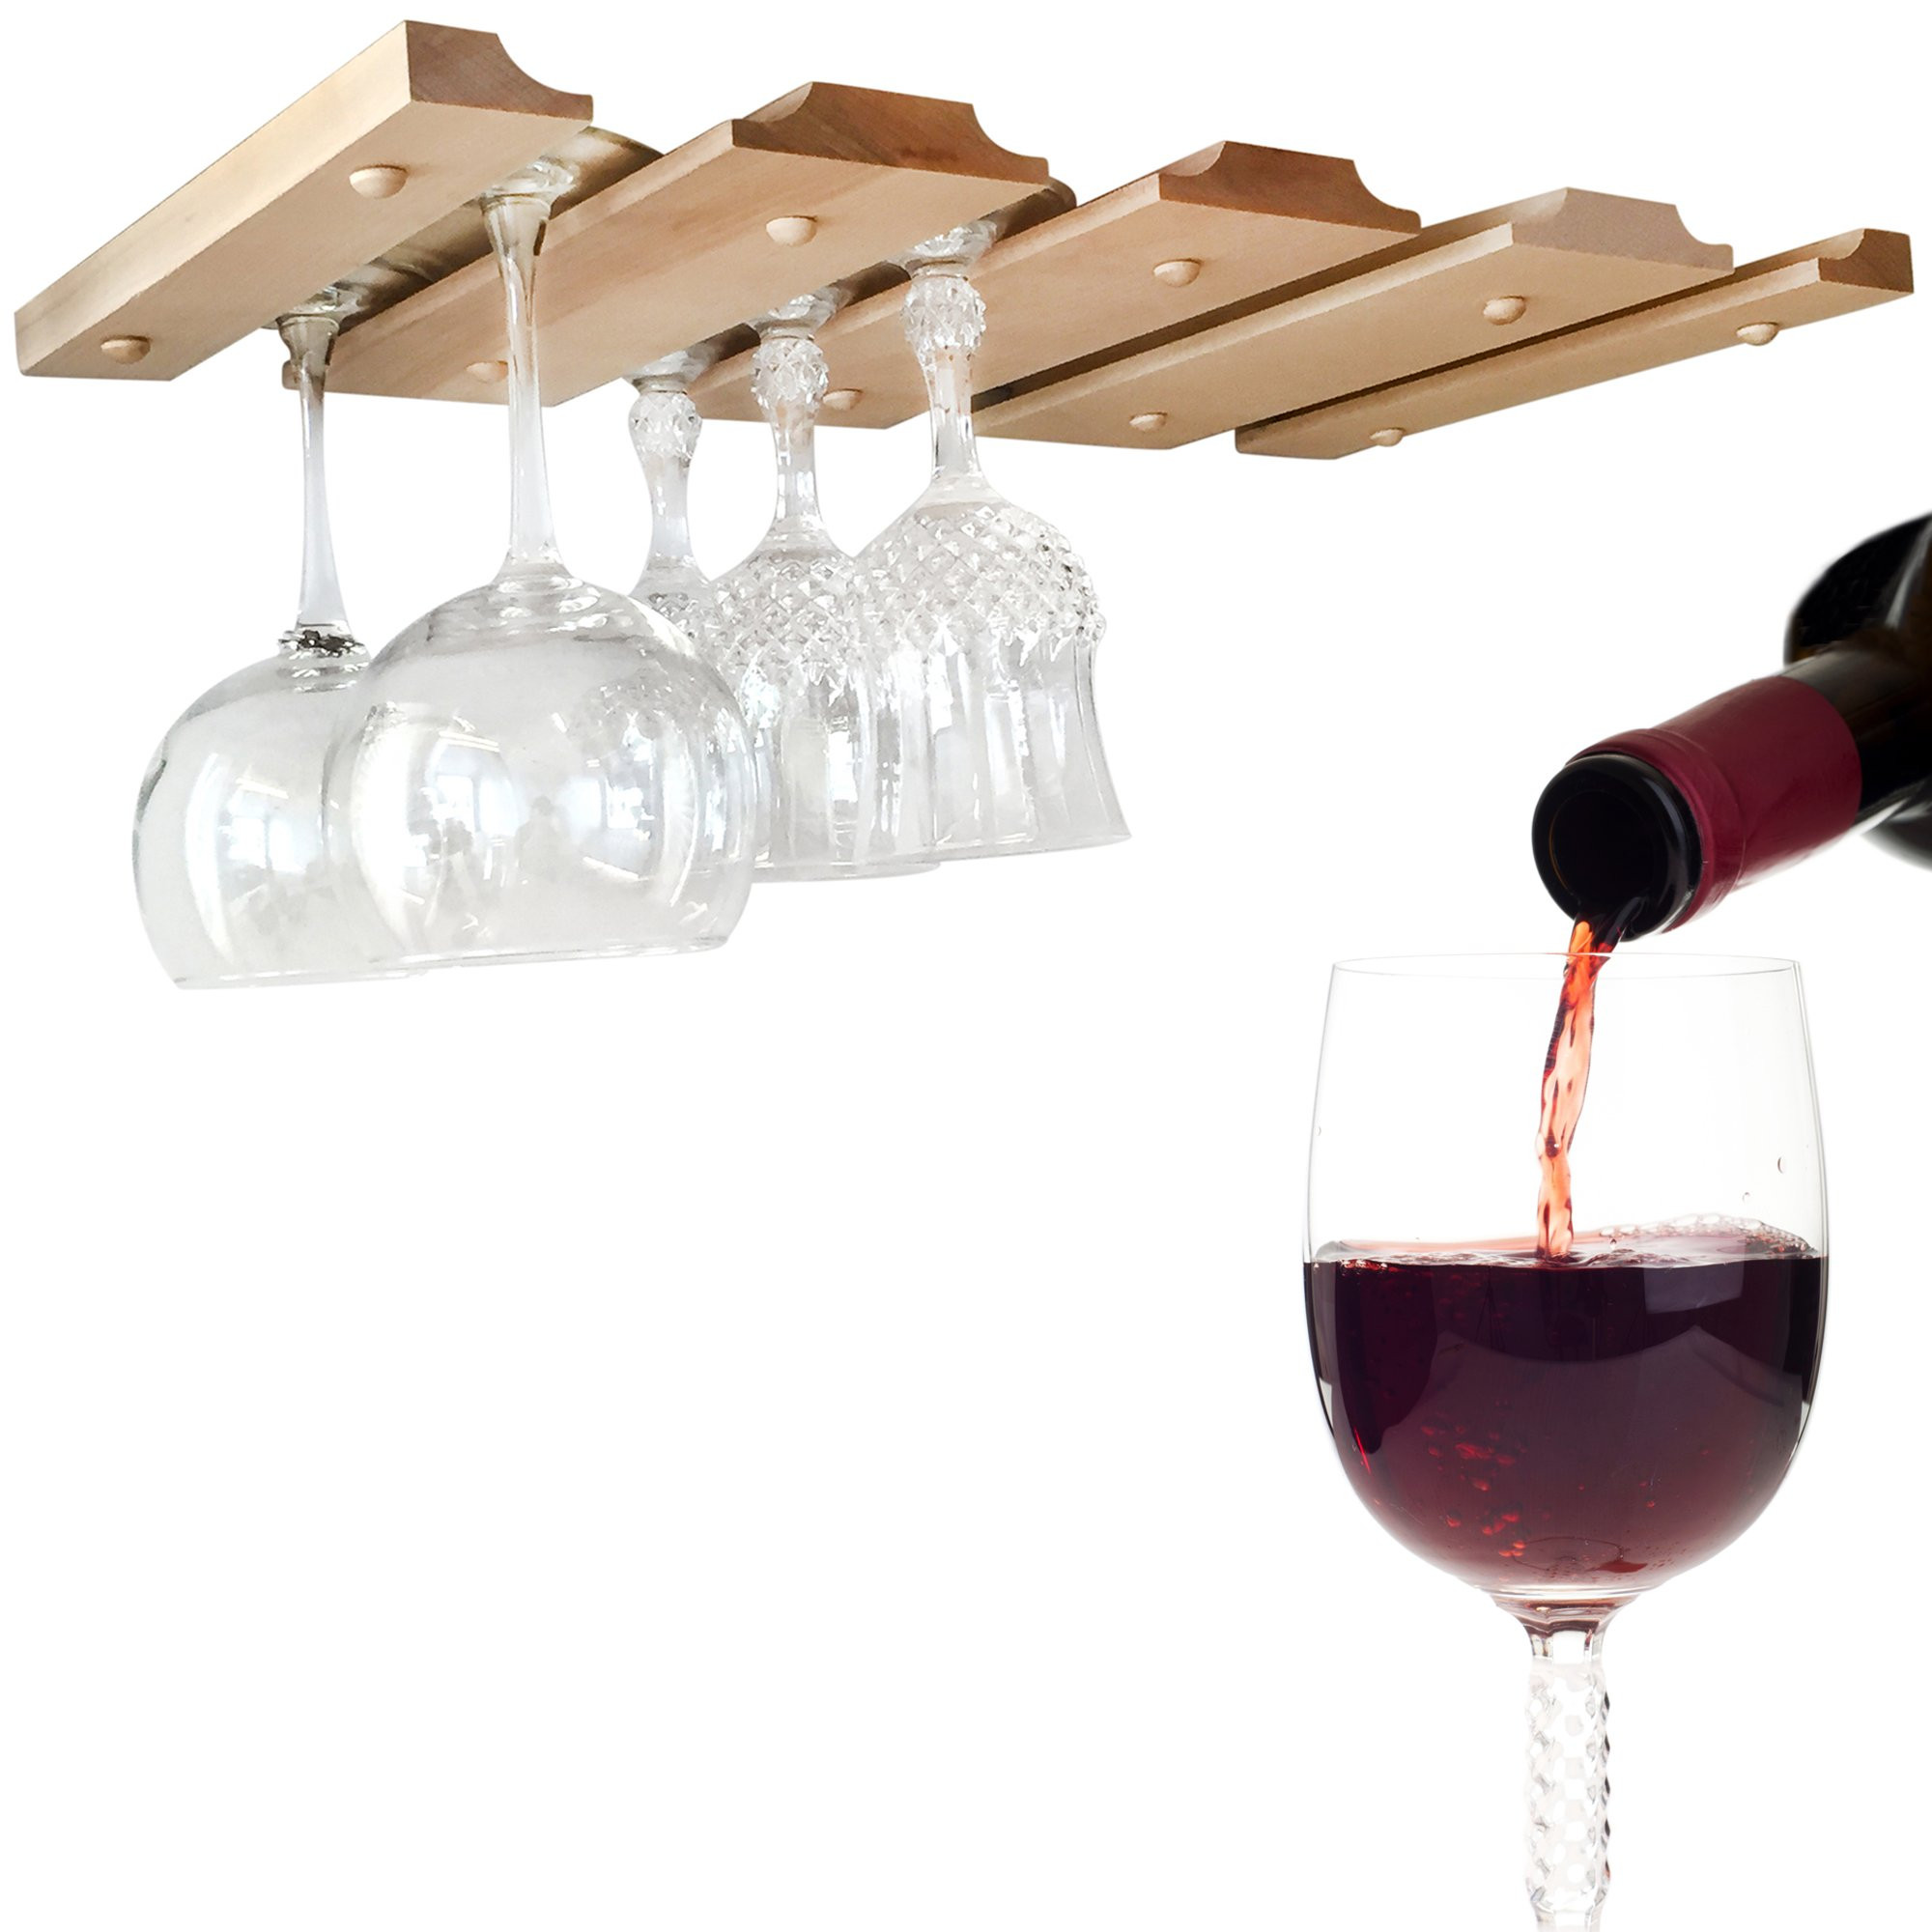 Hanging Wine Glass Rack - Under Cabinet, Counter, Bar or Shelf Stemware Holder - Unfinished Wooden Storage Racks To Organize 12 Glasses (Double) - 11 Inches Deep x 20 Inches Wide - Handmade In The USA by SMITCO